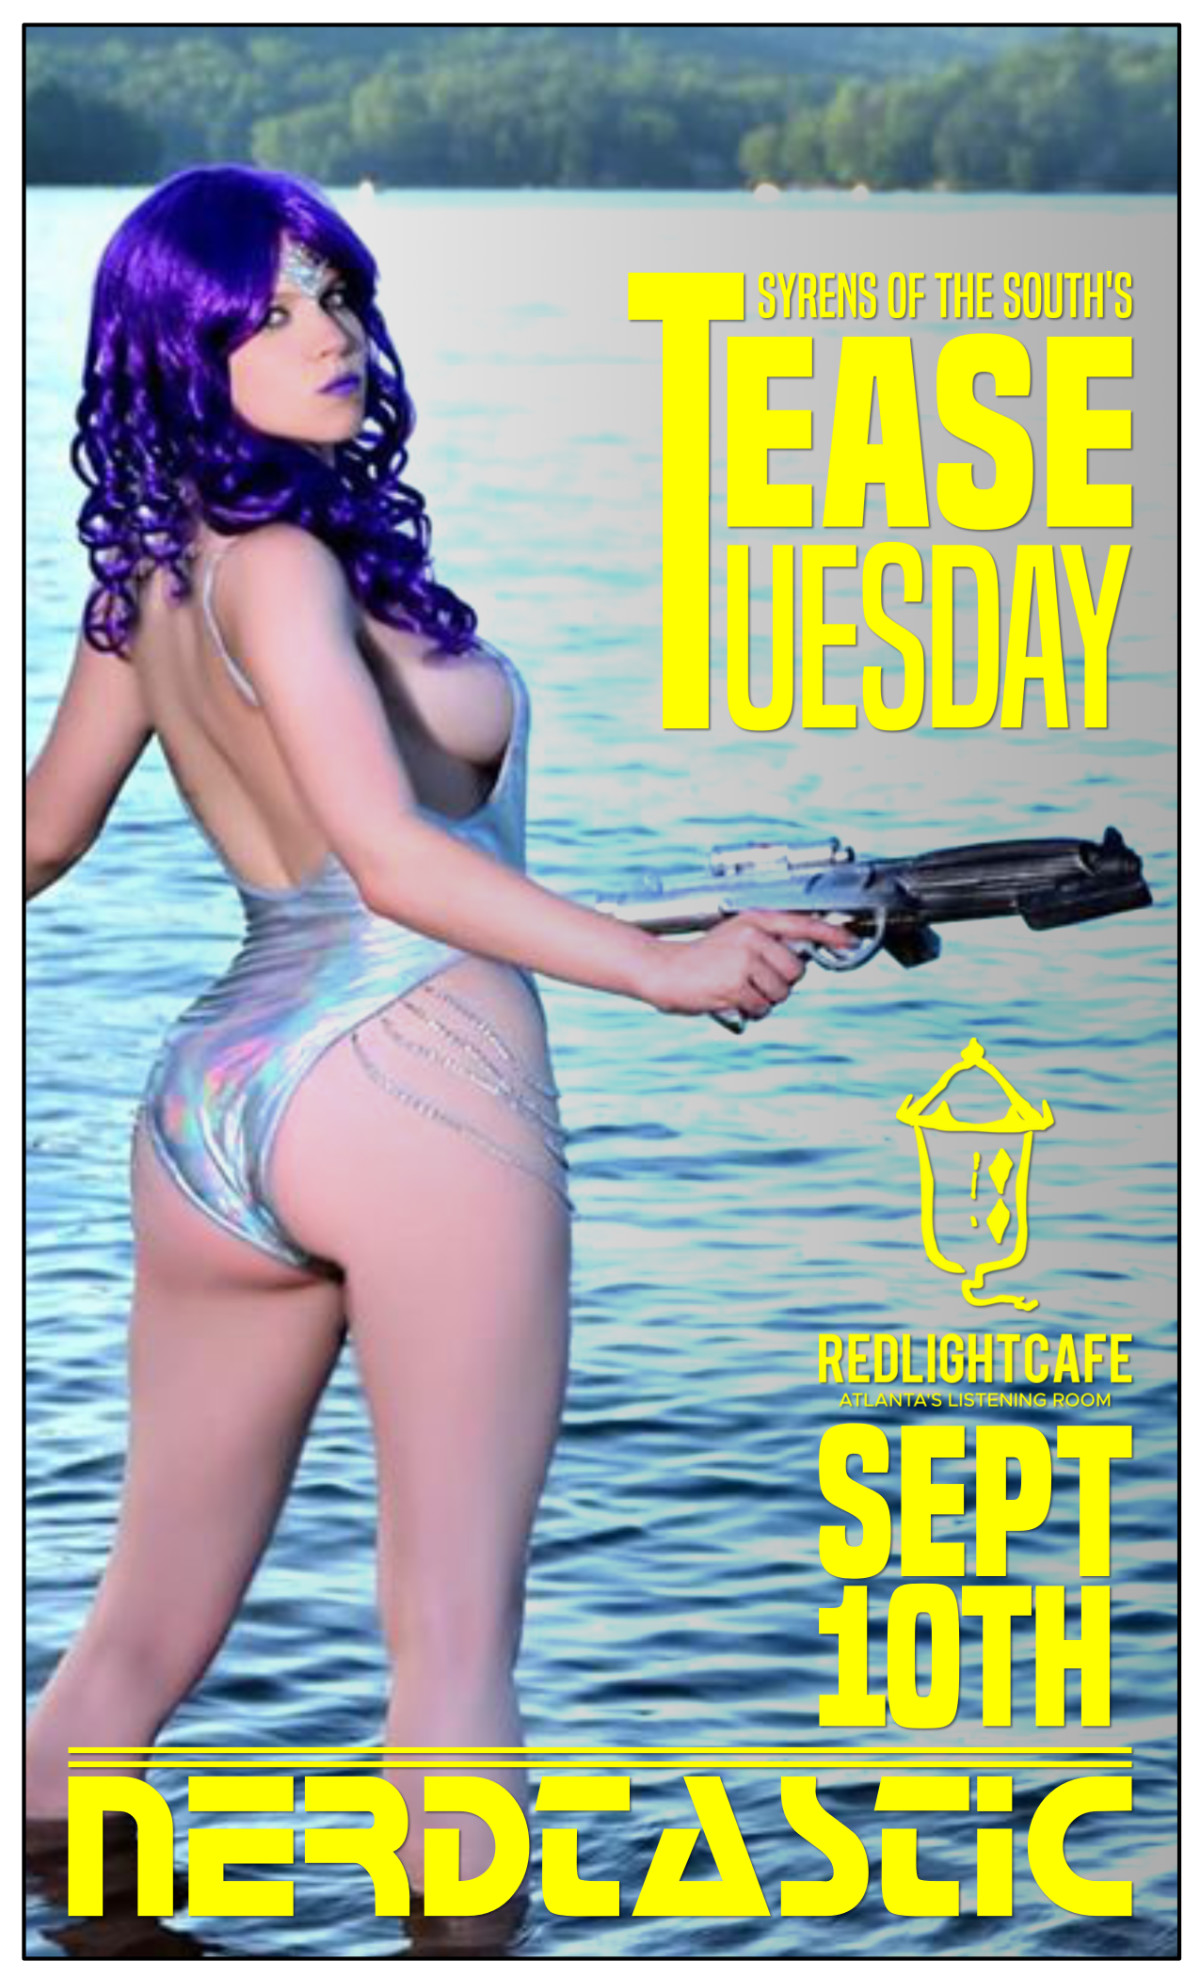 Tease Tuesday Burlesque Nerdtastic — September 10, 2019 — Red Light Café, Atlanta, GA